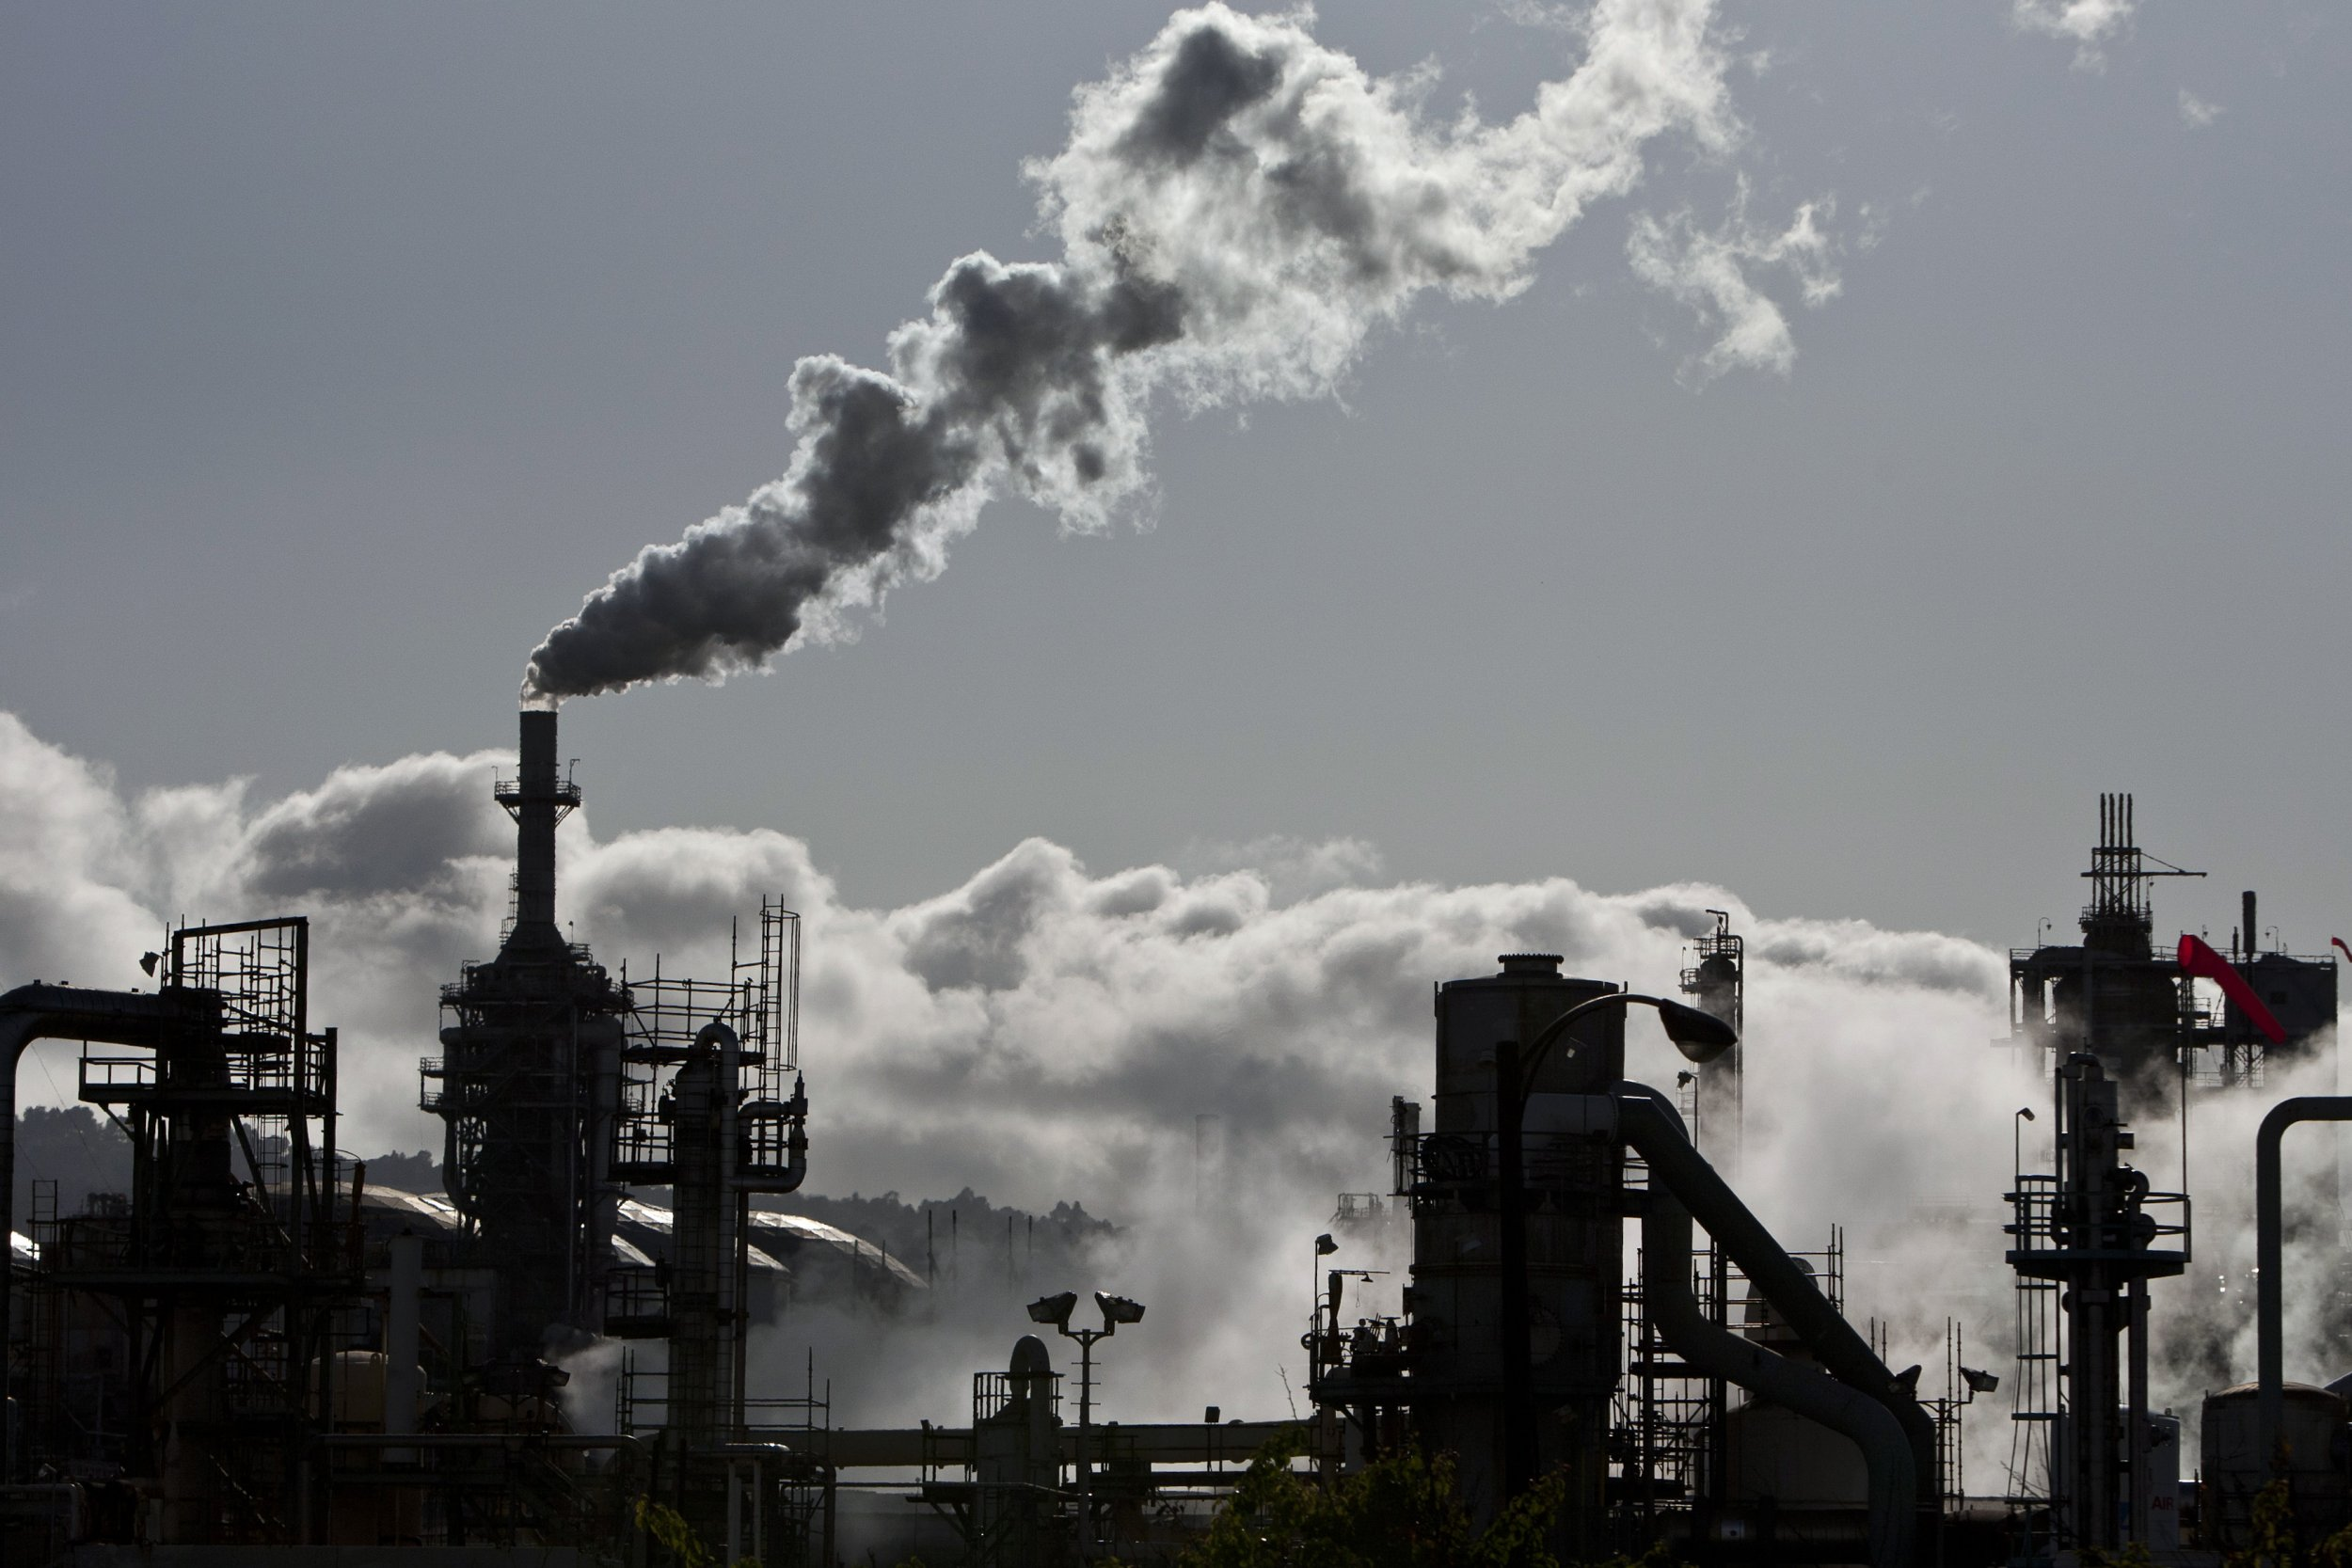 Study Finds Link Between Pollution and Suicide